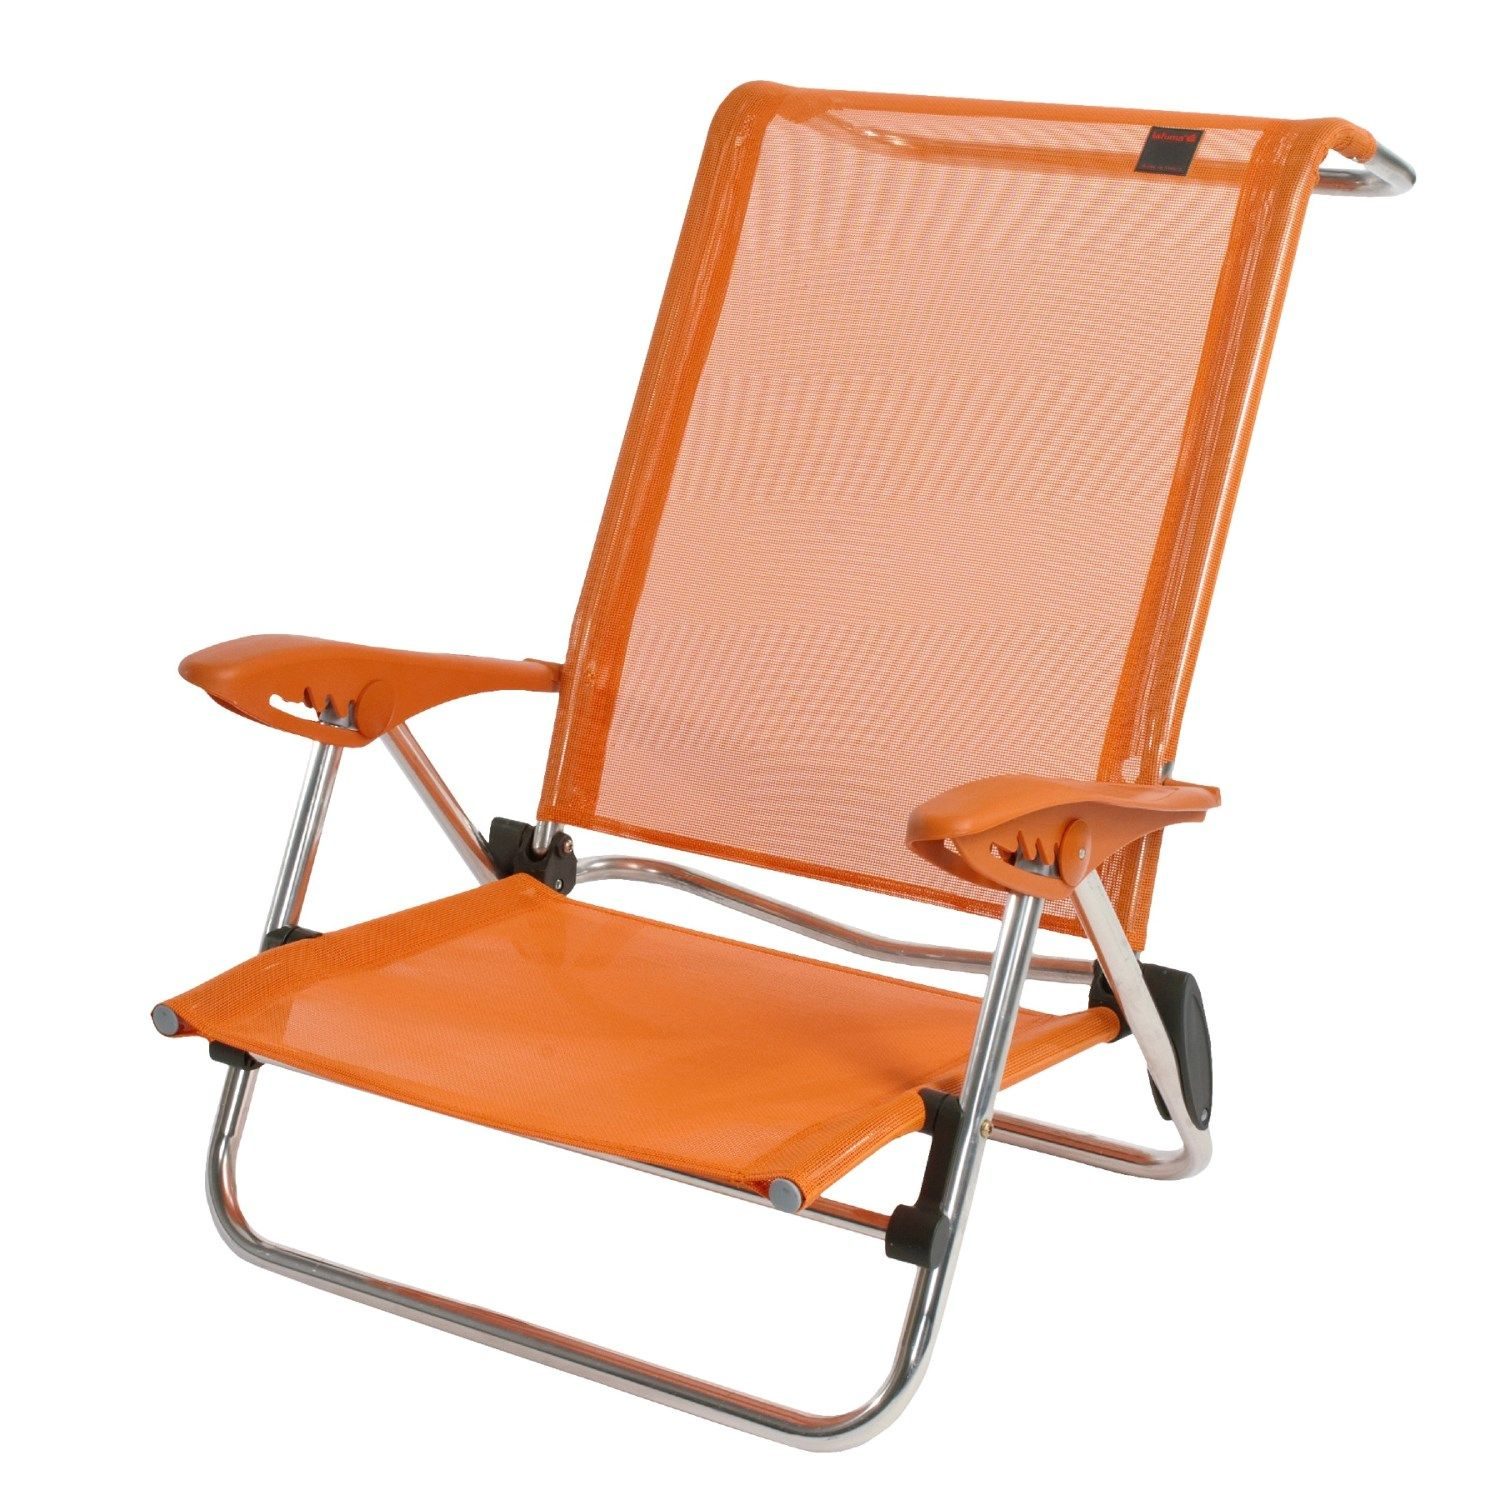 outdoor leisure beach chair table set